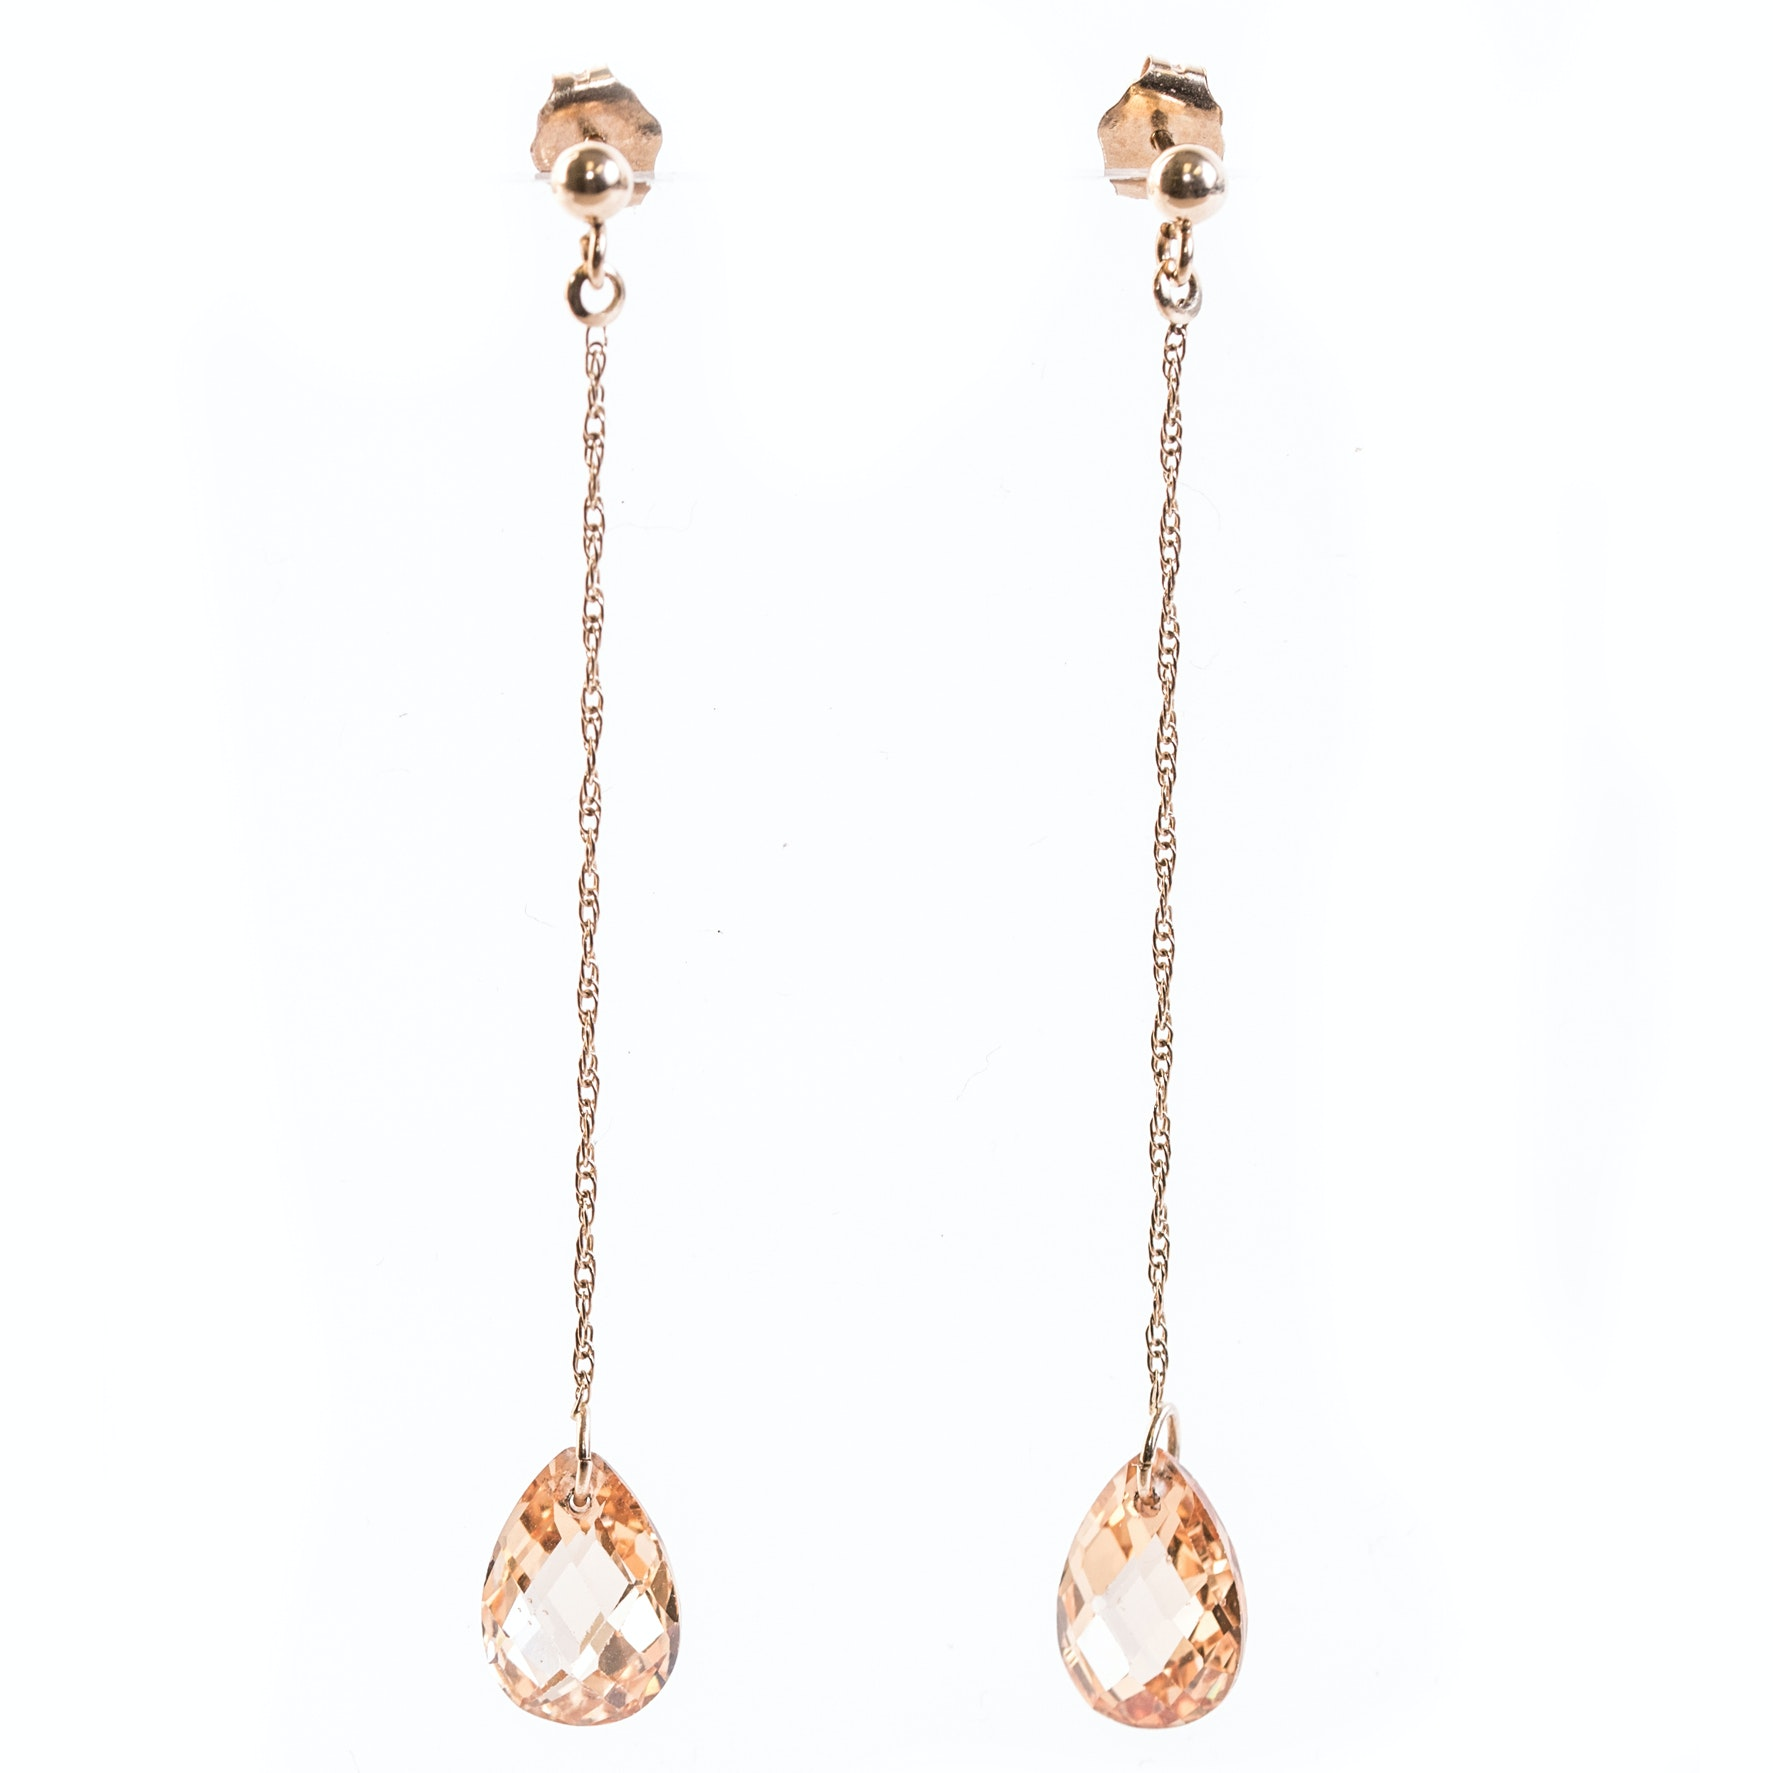 14K Yellow Gold and Citrine Briolette Dangle Earrings